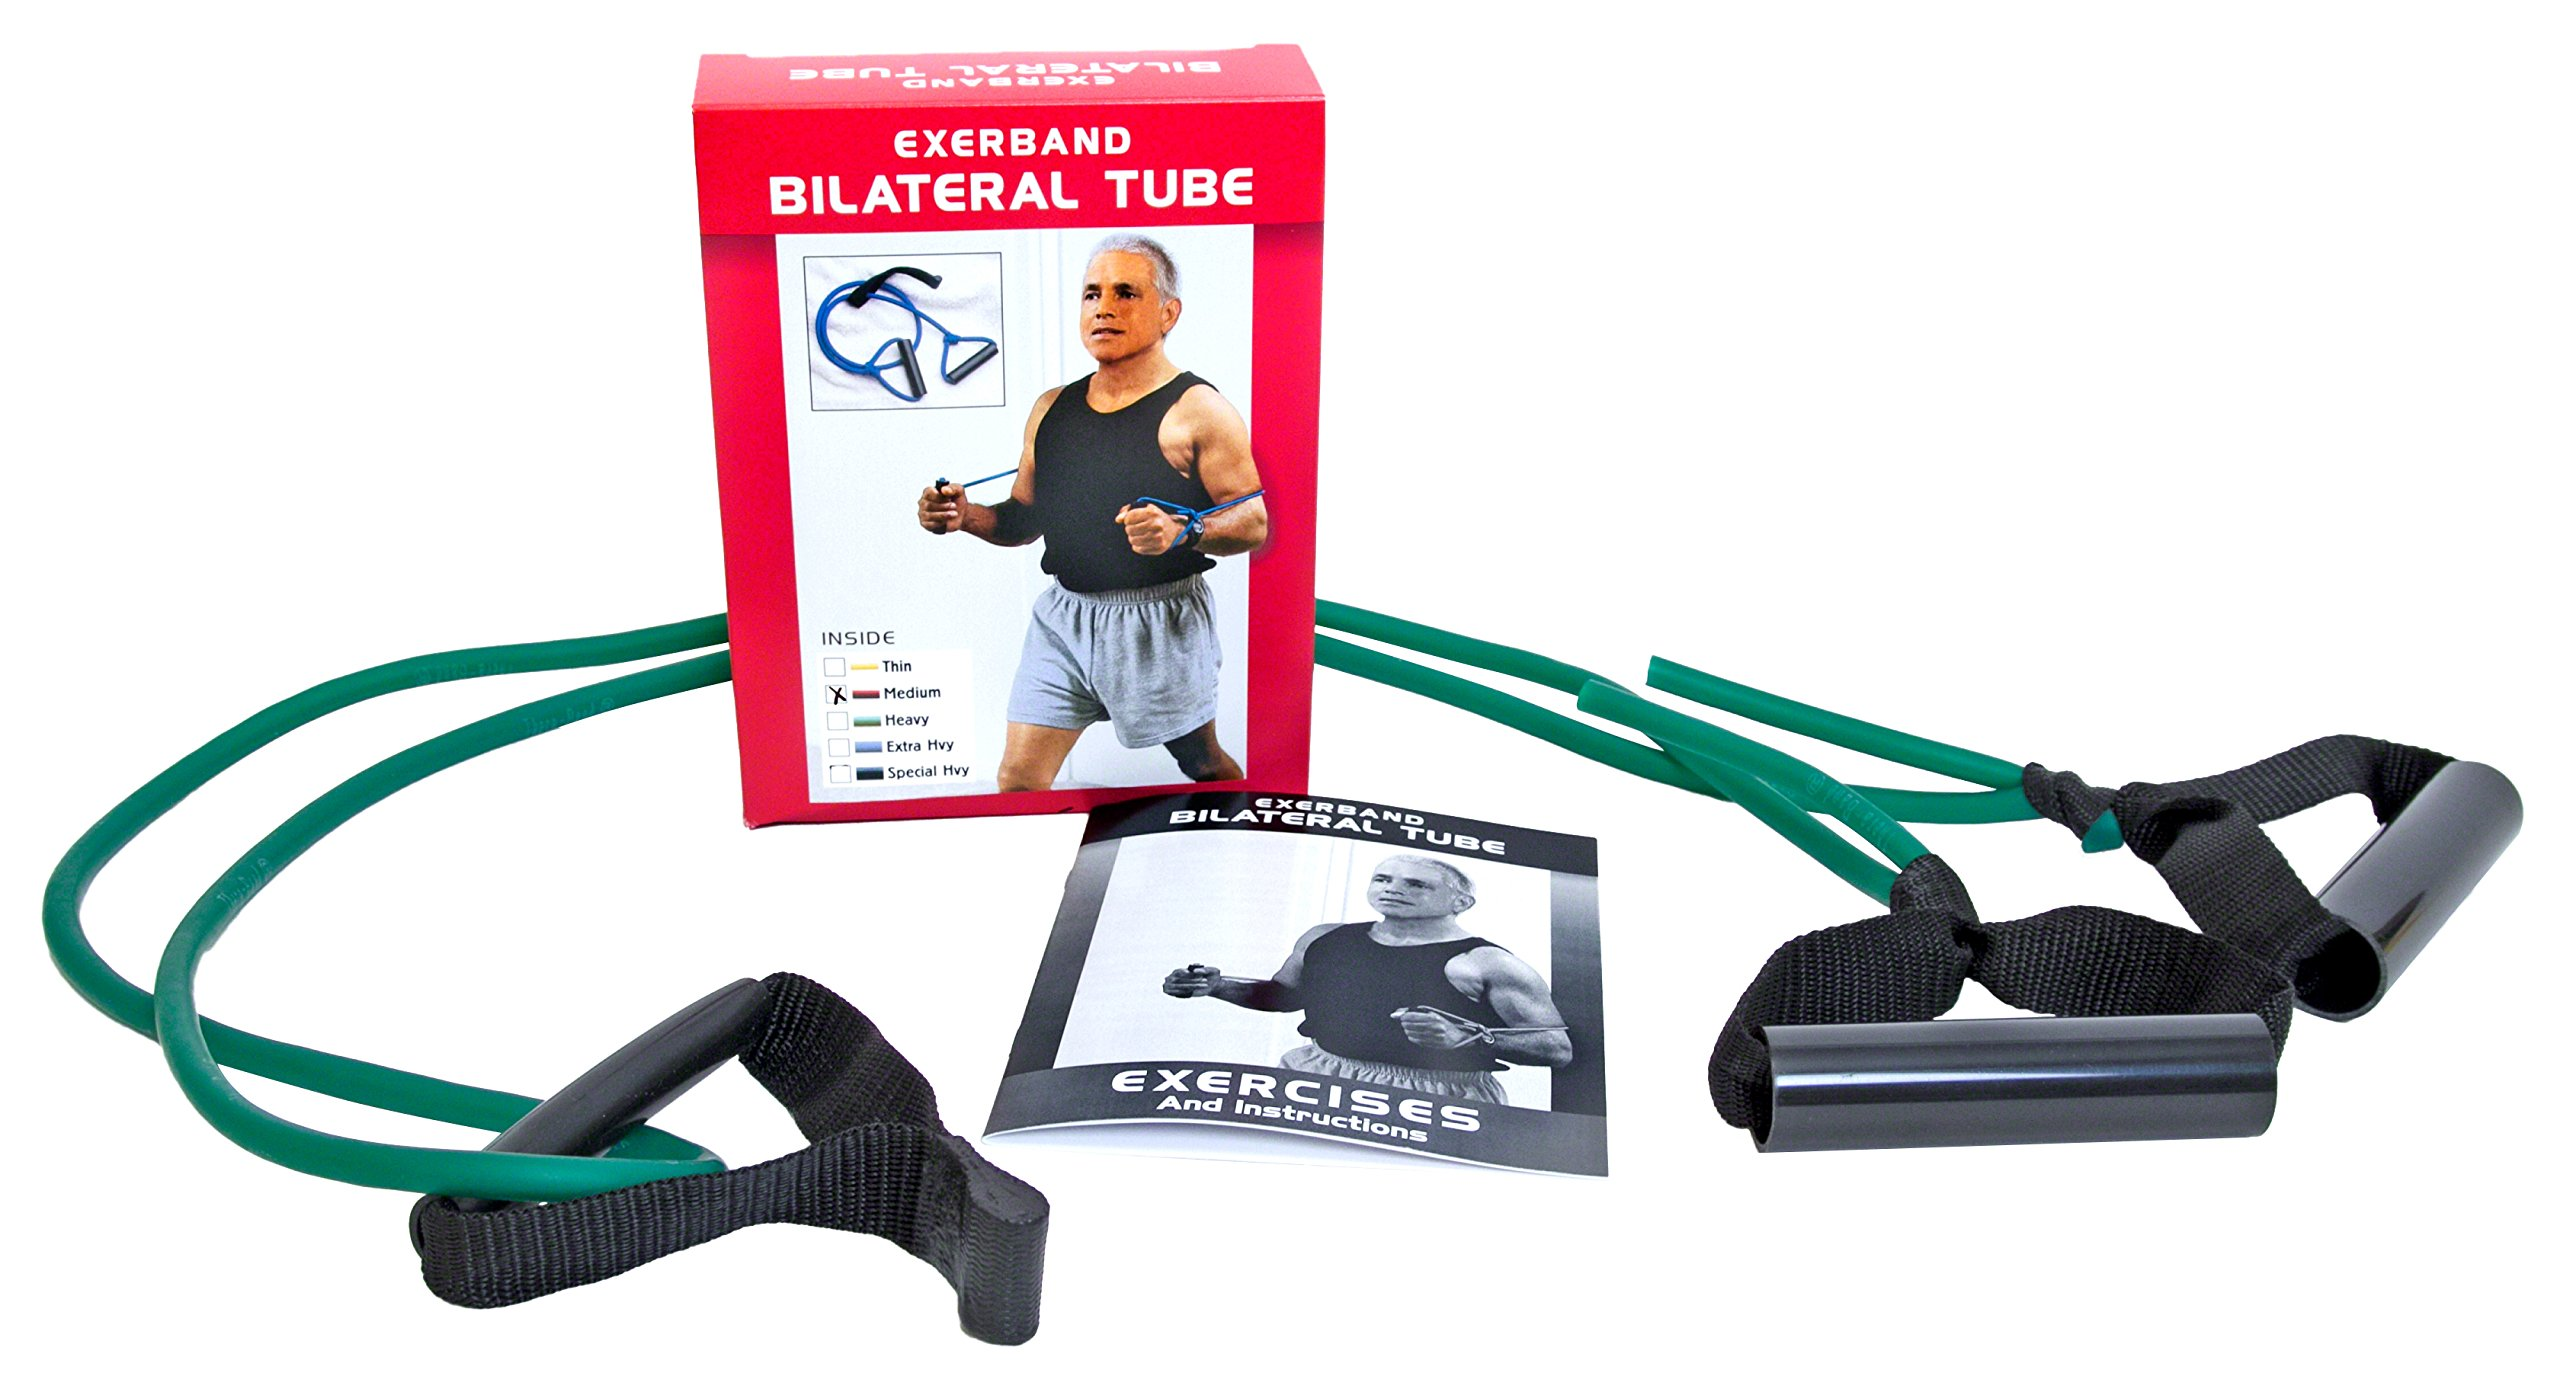 ExerBand 6ft Bilateral Tube Rubber Resistance Tubing with Two Handles For Performing Resistance Workouts at Home - Green